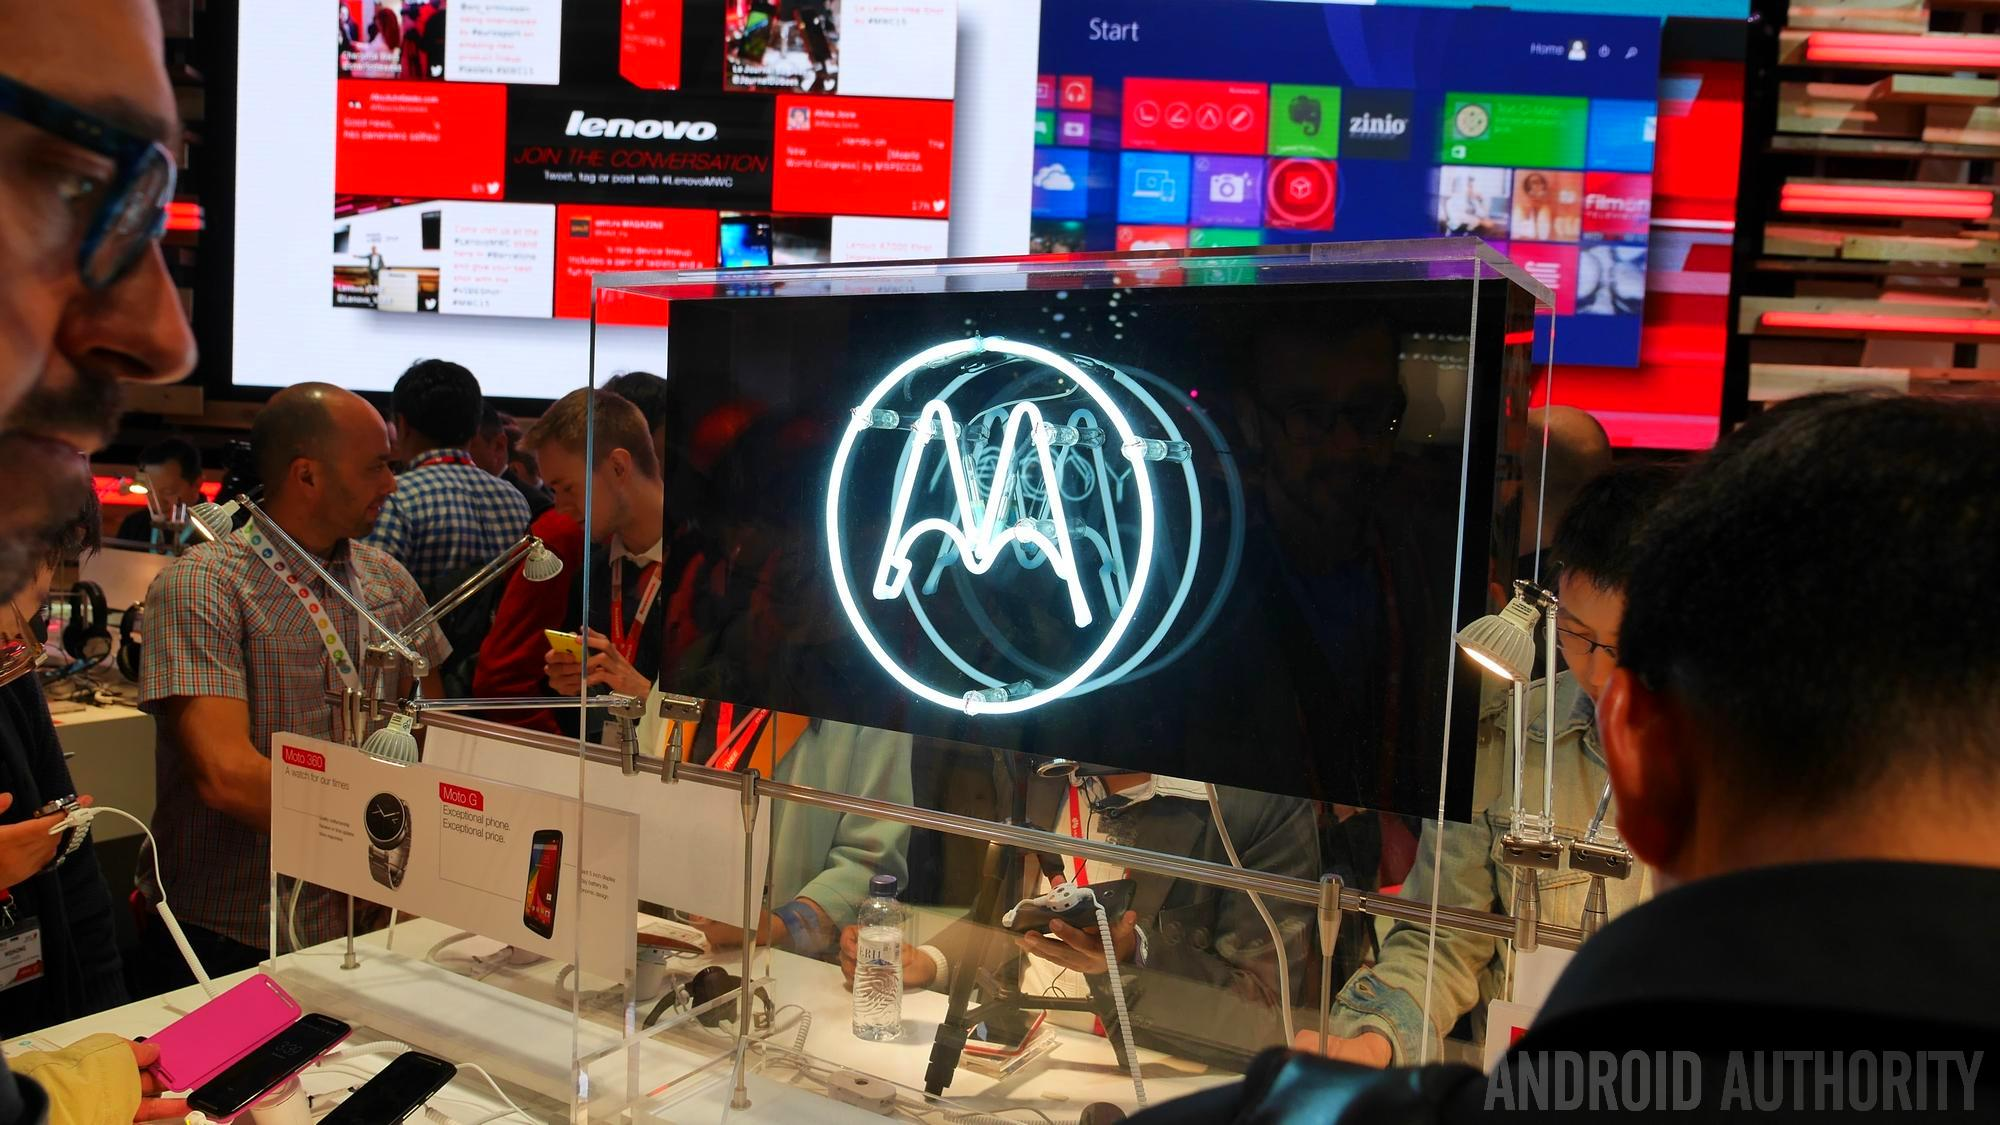 MWC 2015 showing people browsing gadgets and a Motorola illuminated logo.